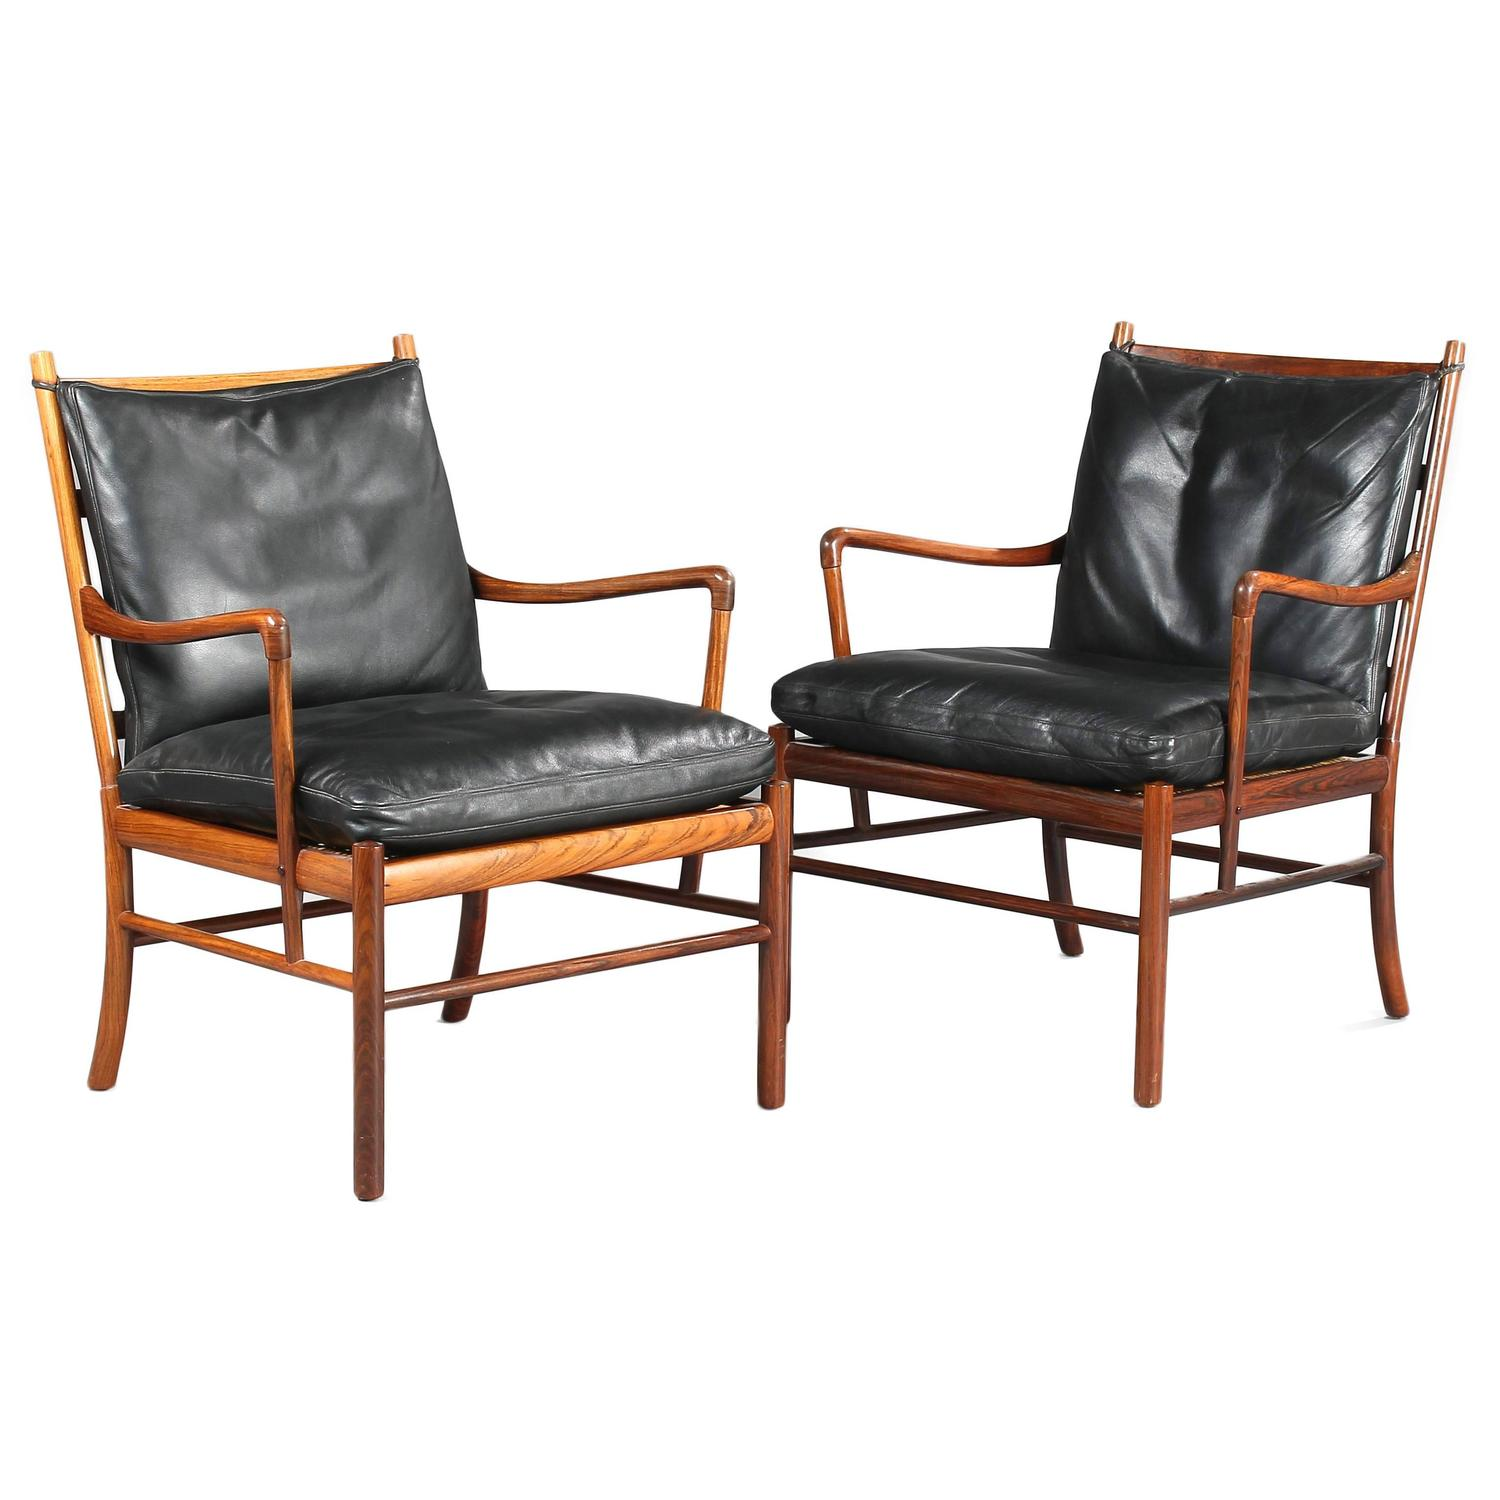 Colonial Armchair: 'Colonial' PJ149 Armchairs And Ottoman In Rosewood By O